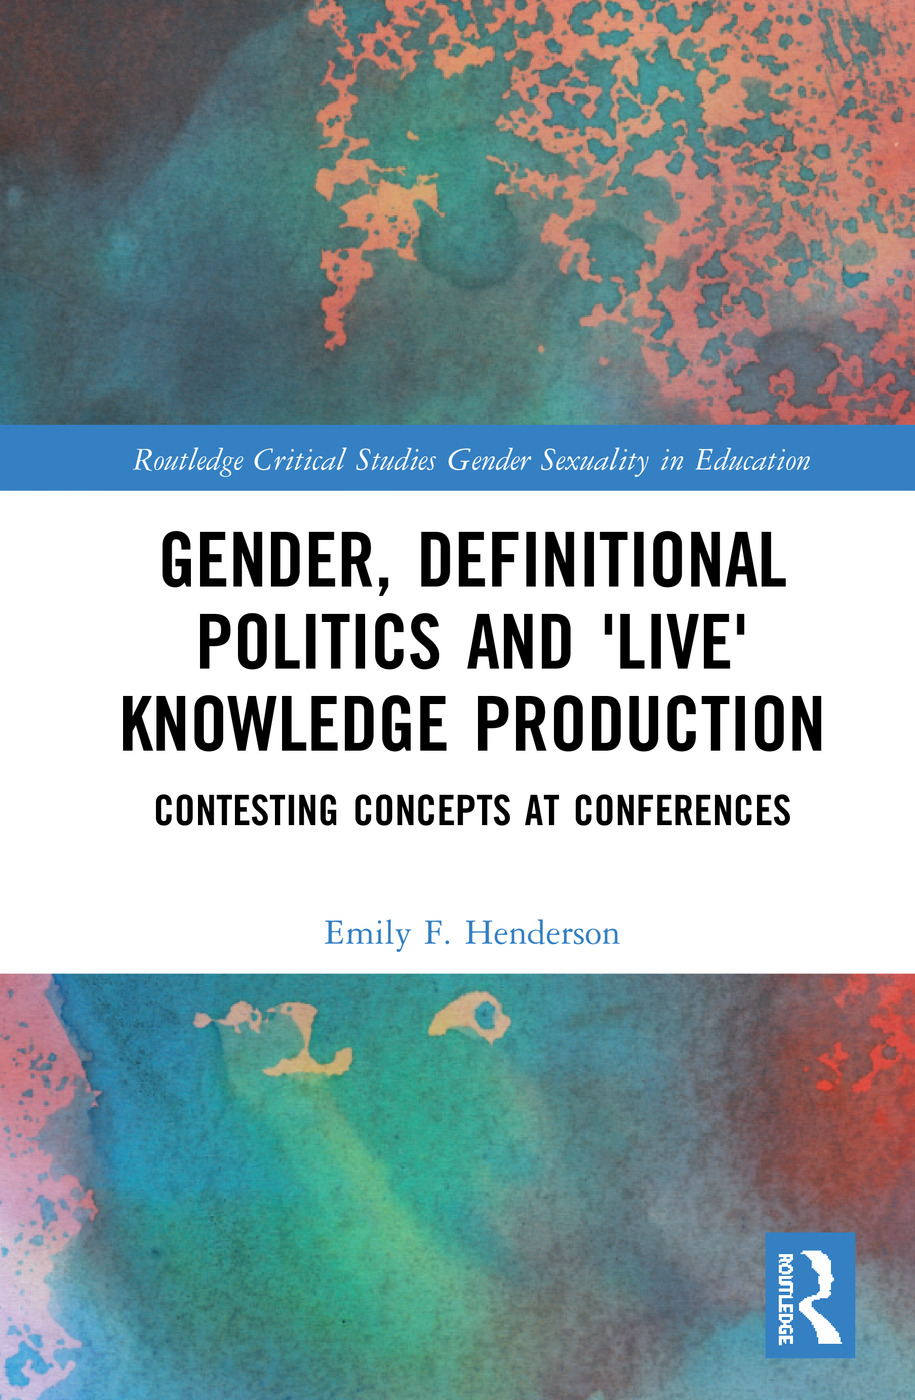 Gender, Definitional Politics and 'Live' Knowledge Production: Contesting Concepts at Conferences book cover